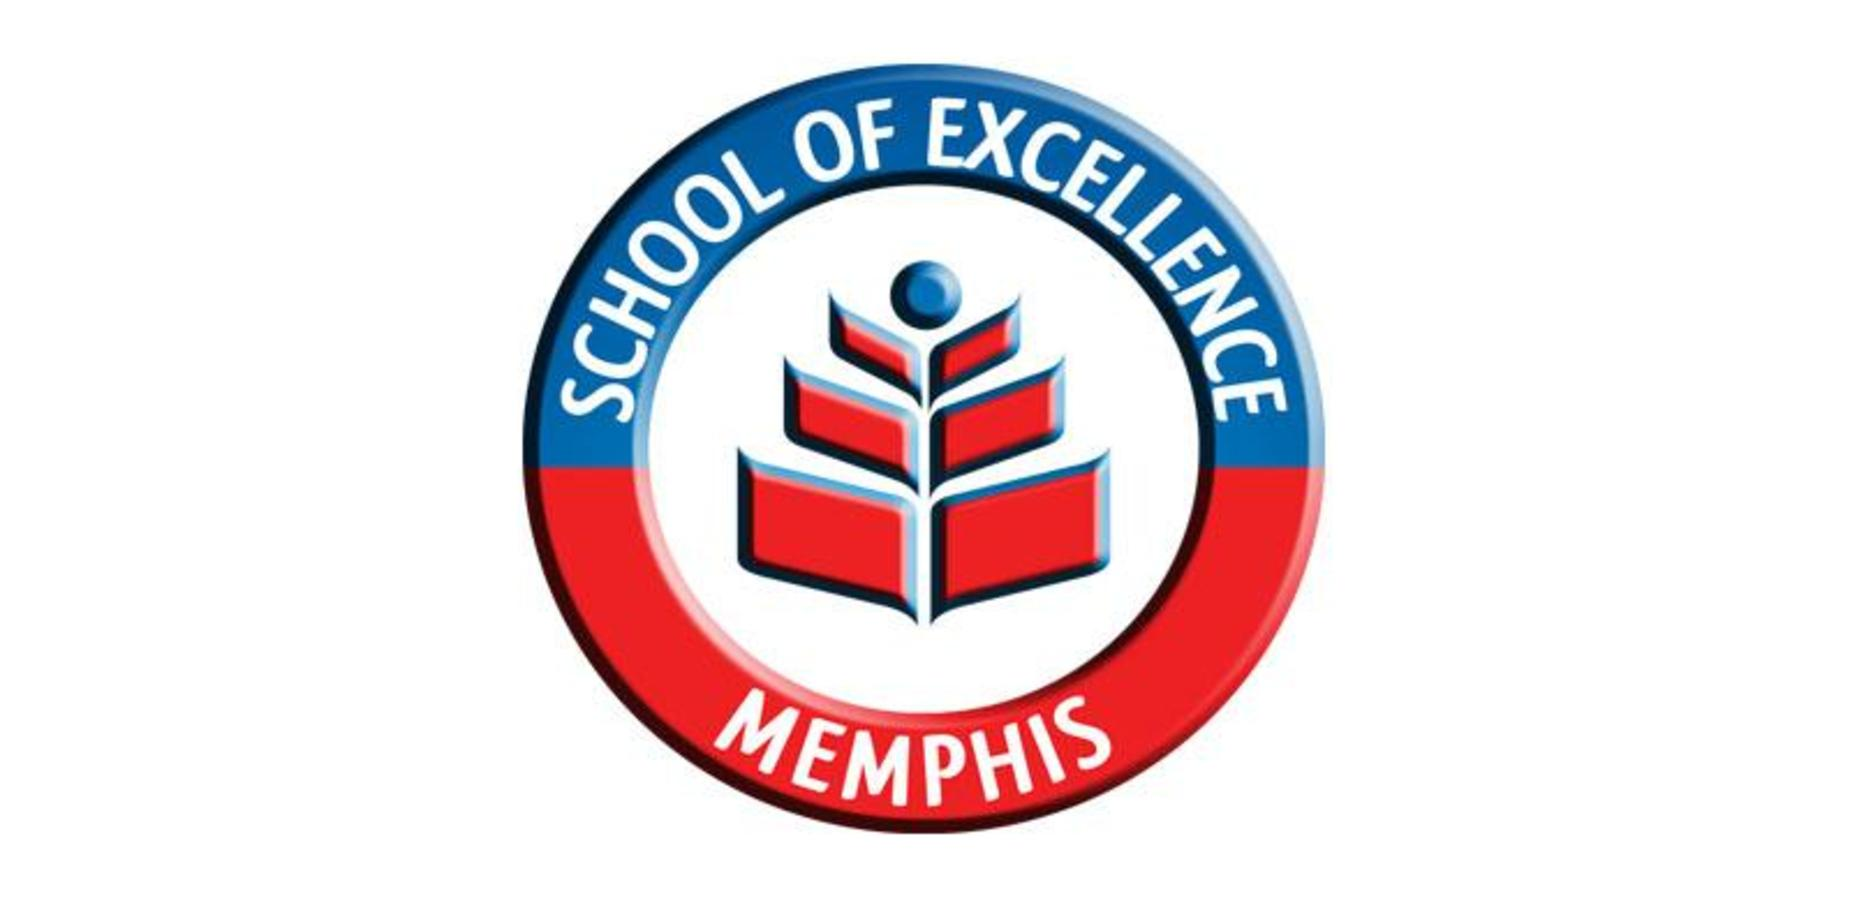 Memphis School of Excellence Network